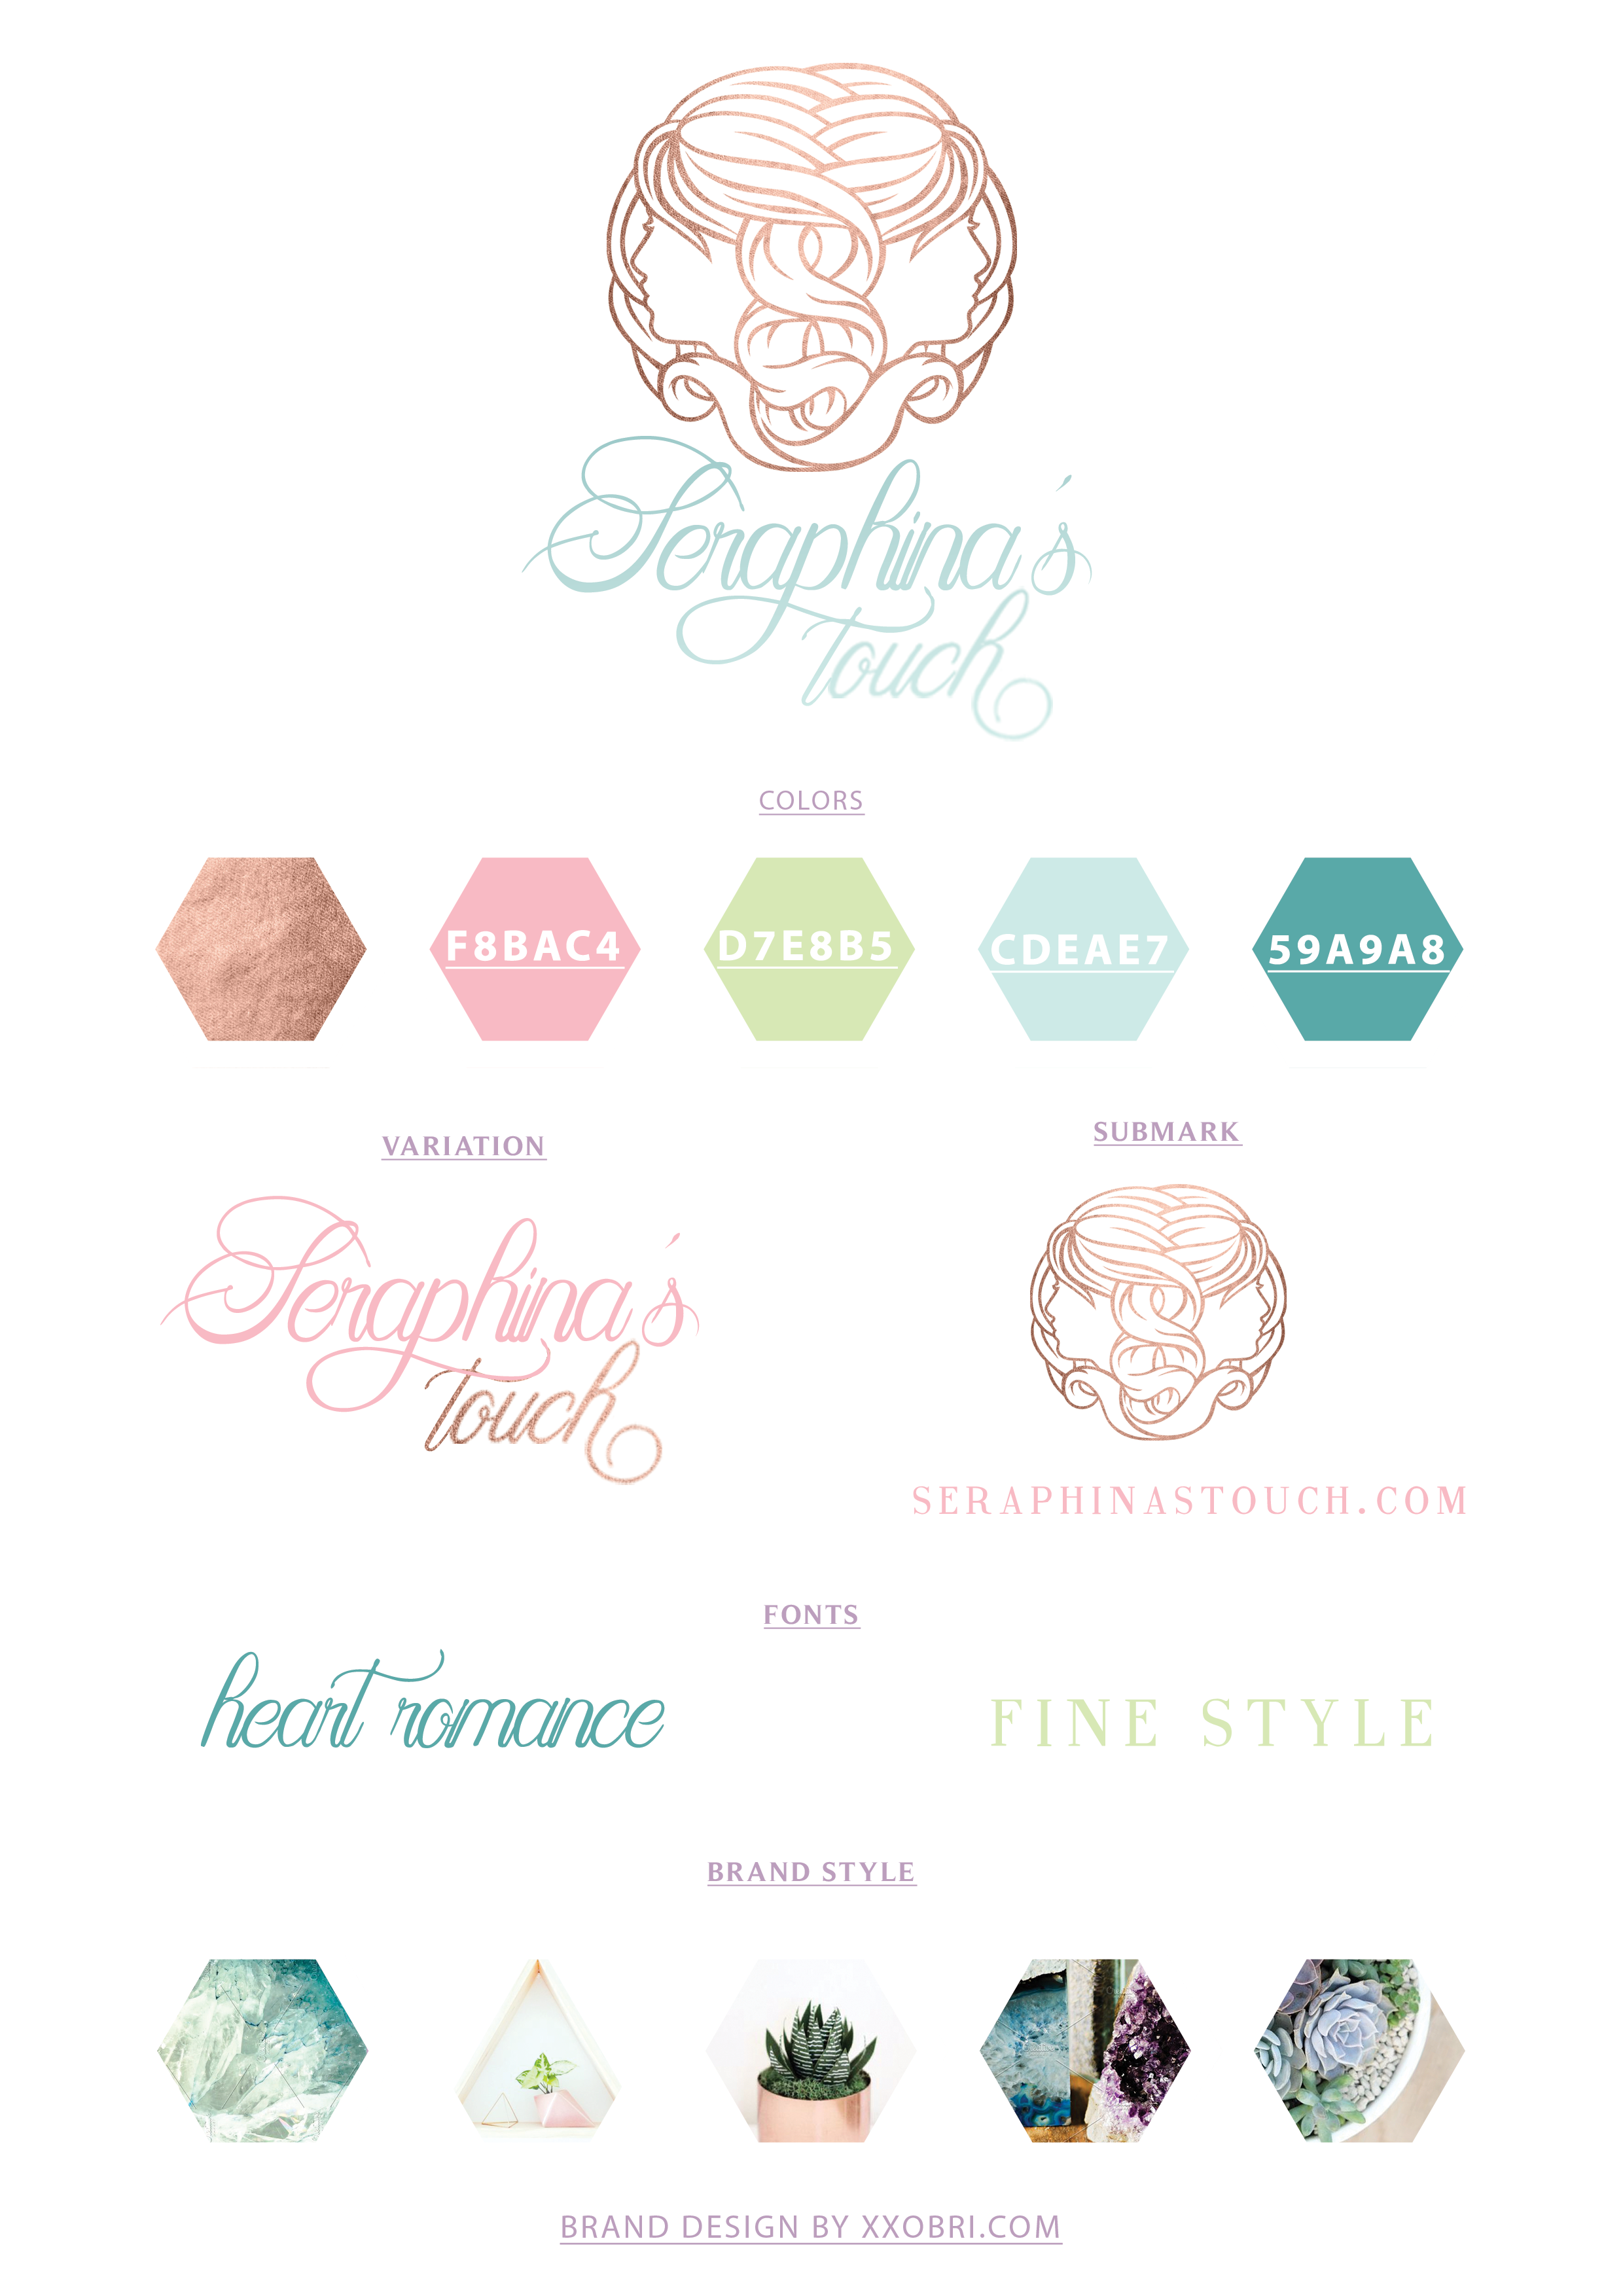 Seraphina's Touch // Branding